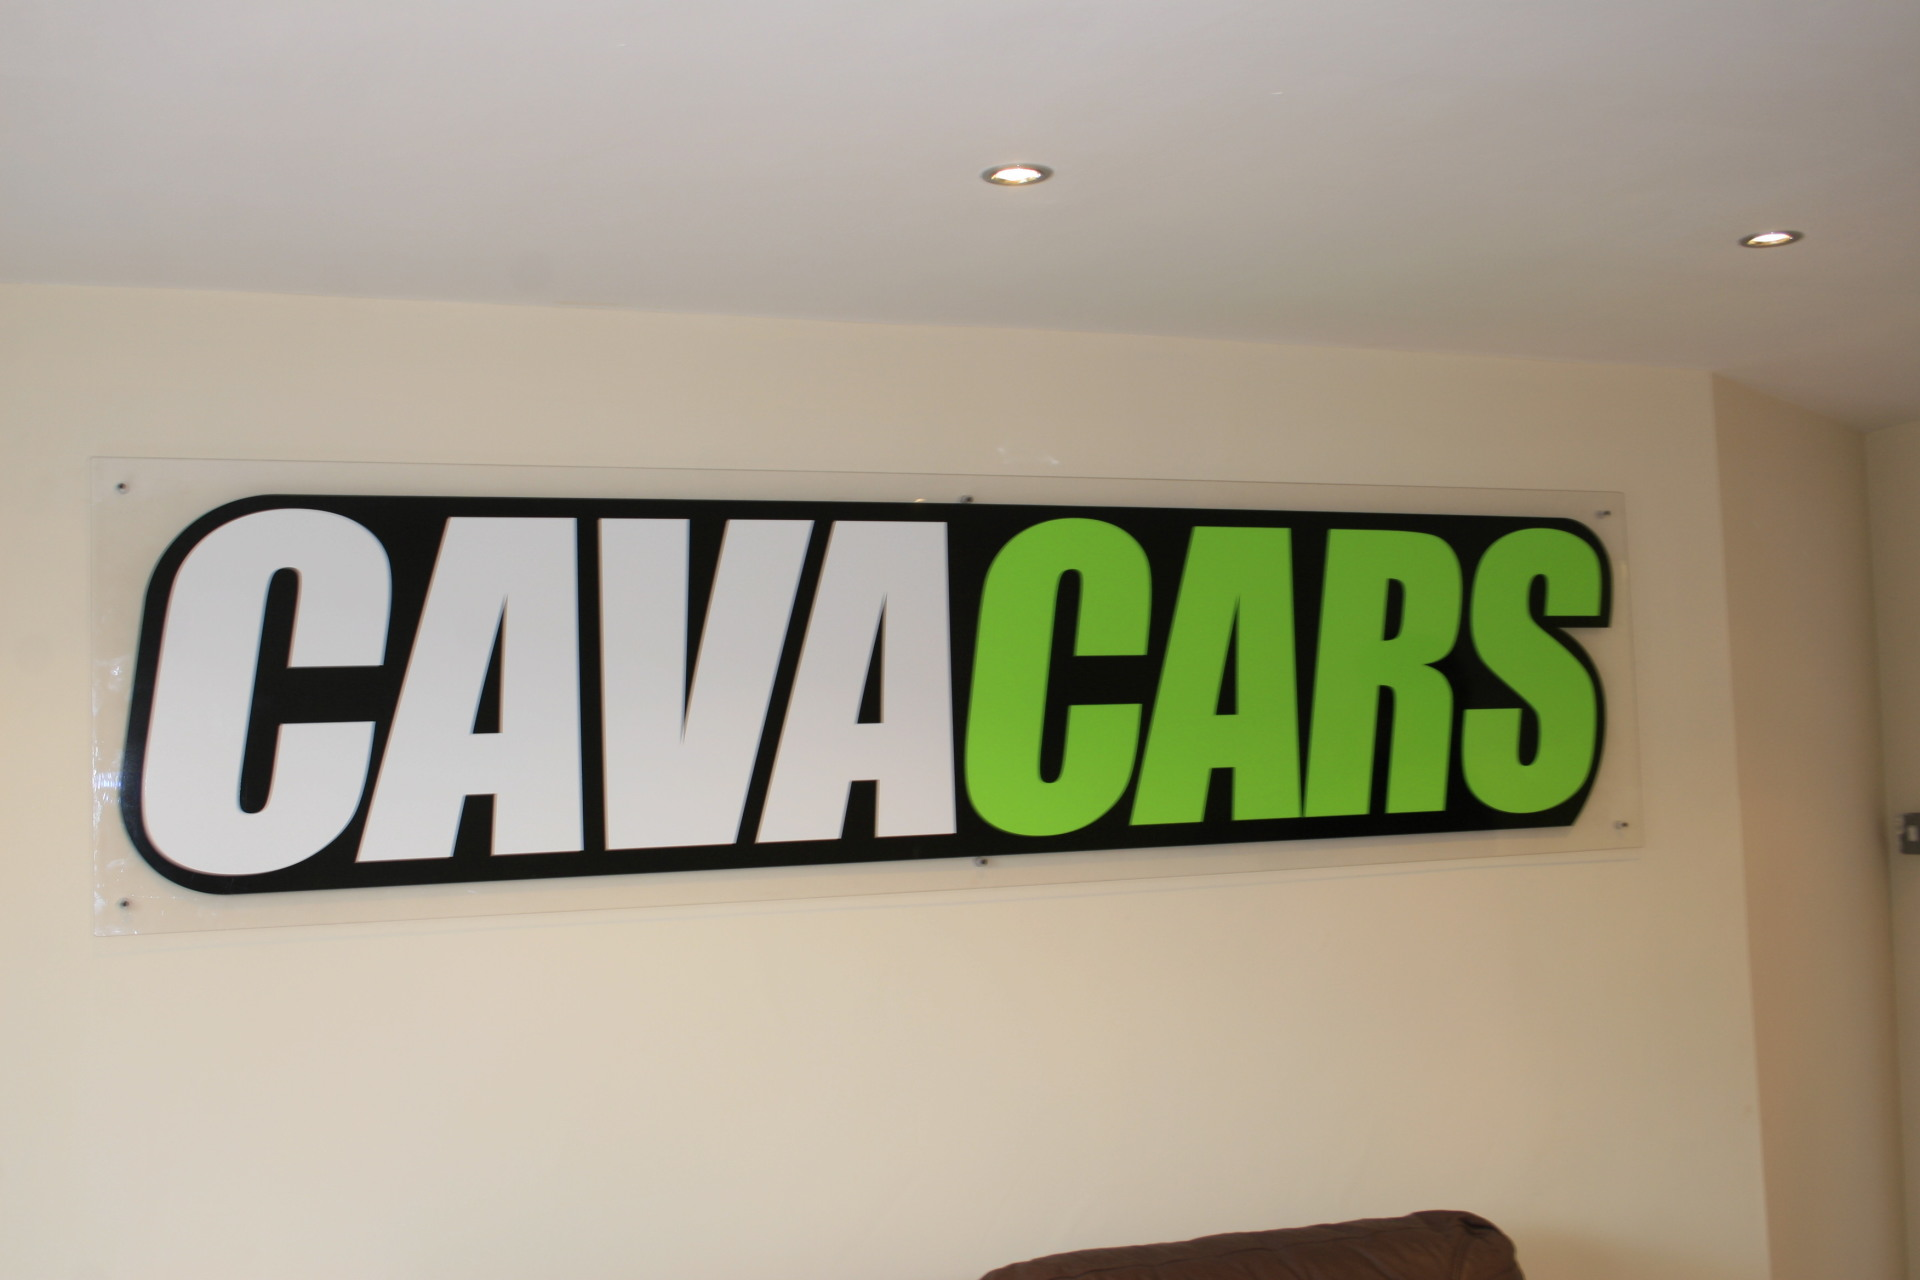 hull graphics, graphics hull, van graphics,  shop signs, window graphics, graphics, signs, Sign Makers, Sign Maker, Shop Front Signs, Illuminated Signs, Poster Frame, Poster Frames, Light Boxes, Sign Making Supplies, Sign Manufacturers, Bespoke Signs